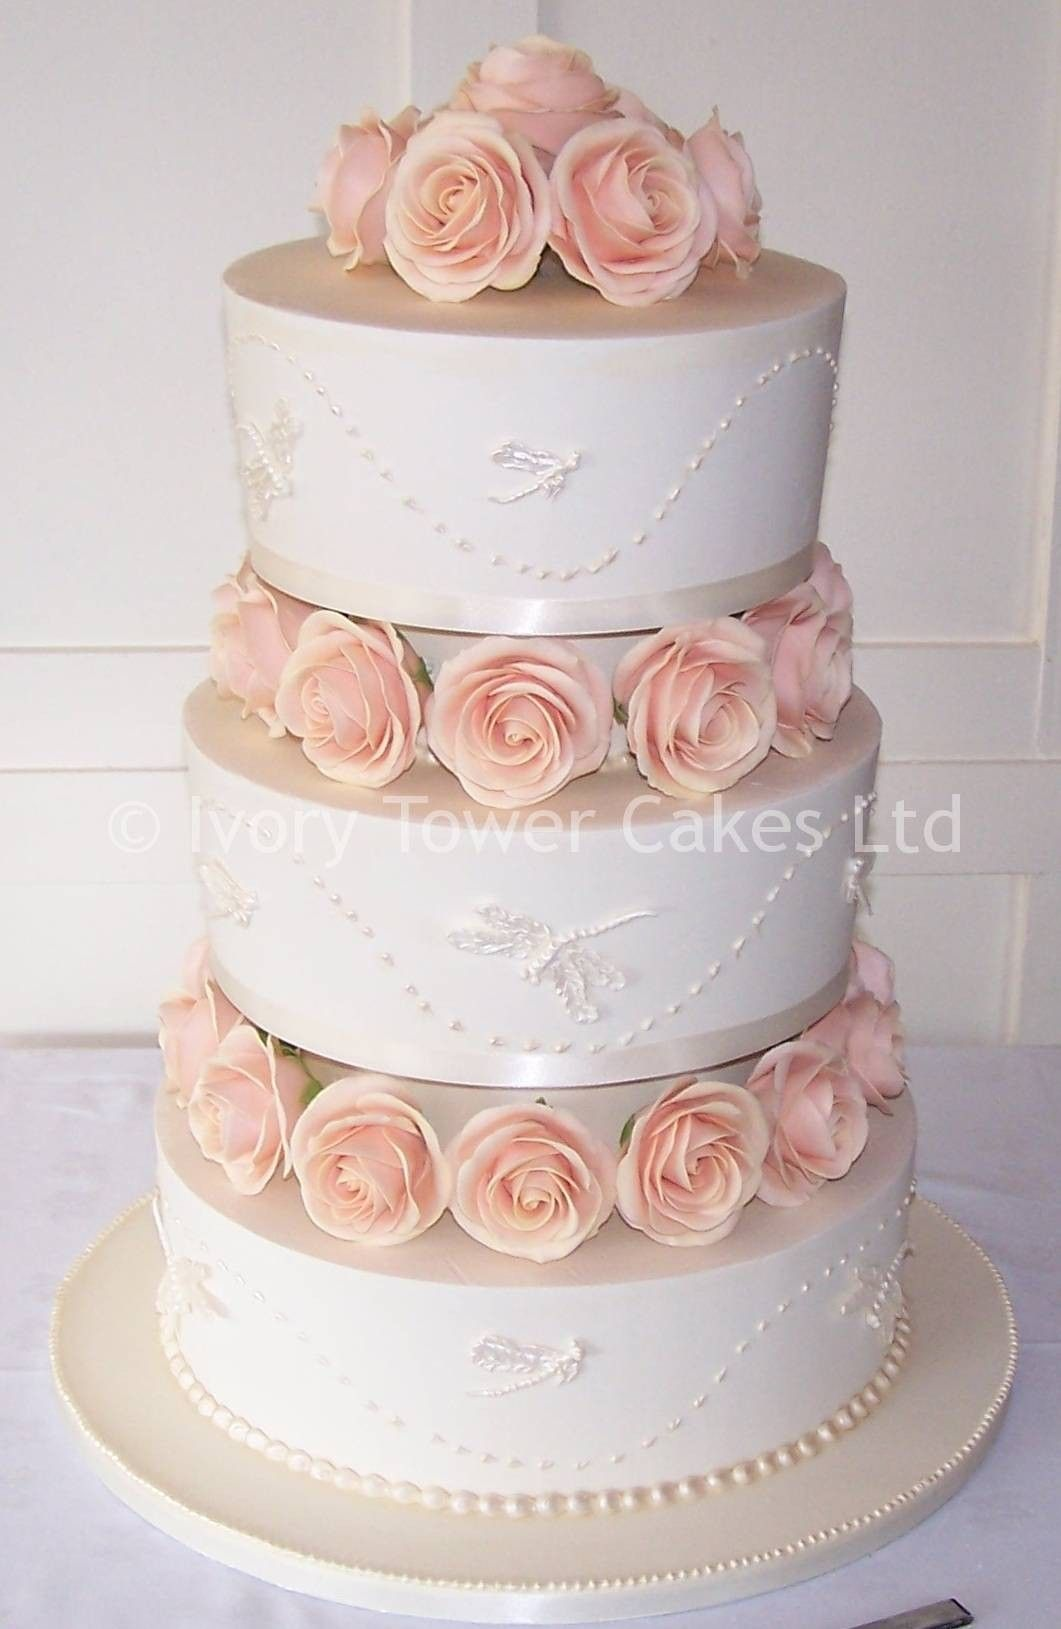 marks and spencer wedding cake dowels small 3 tier wedding cakes to three tier wedding cakes 17171